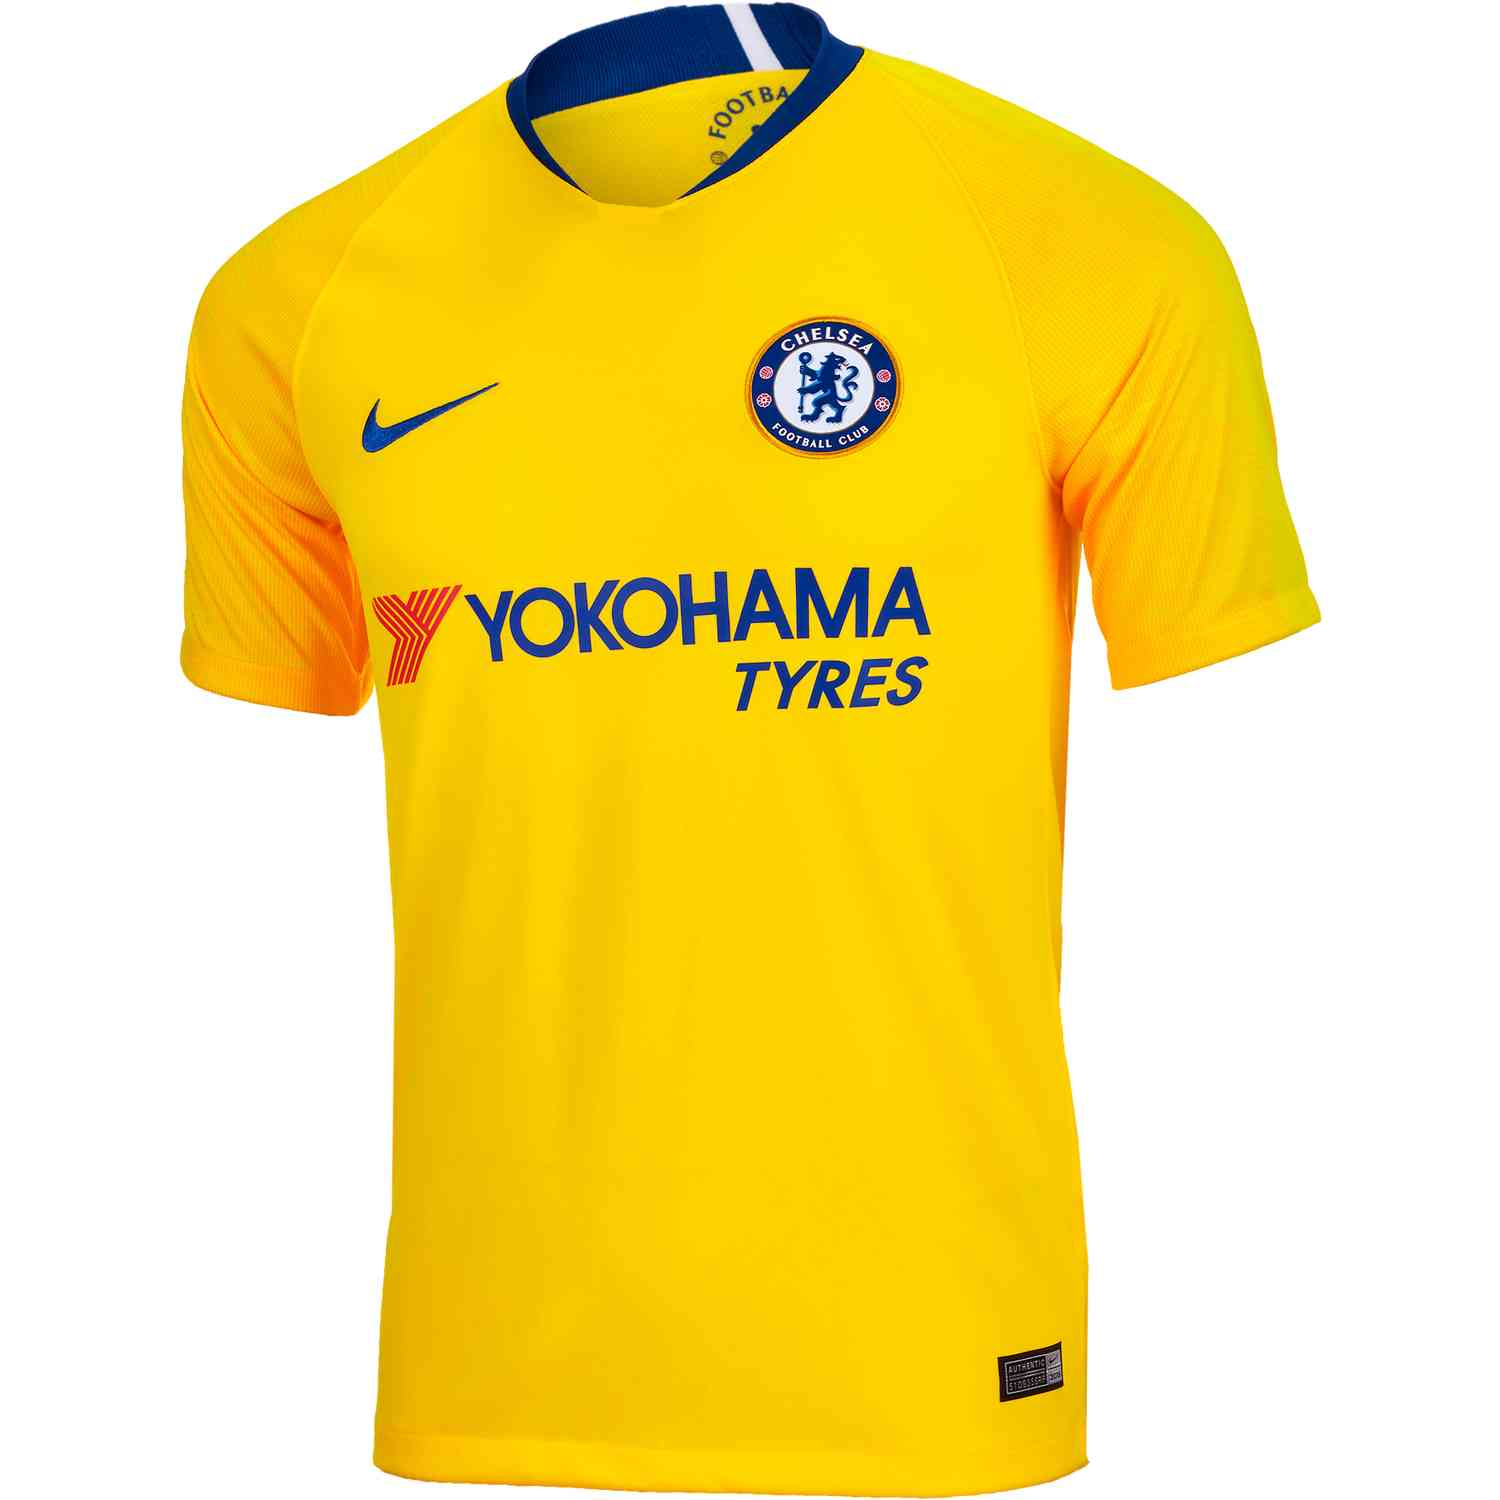 reputable site 52d8b 726bc 2018/19 Nike Chelsea Away Jersey